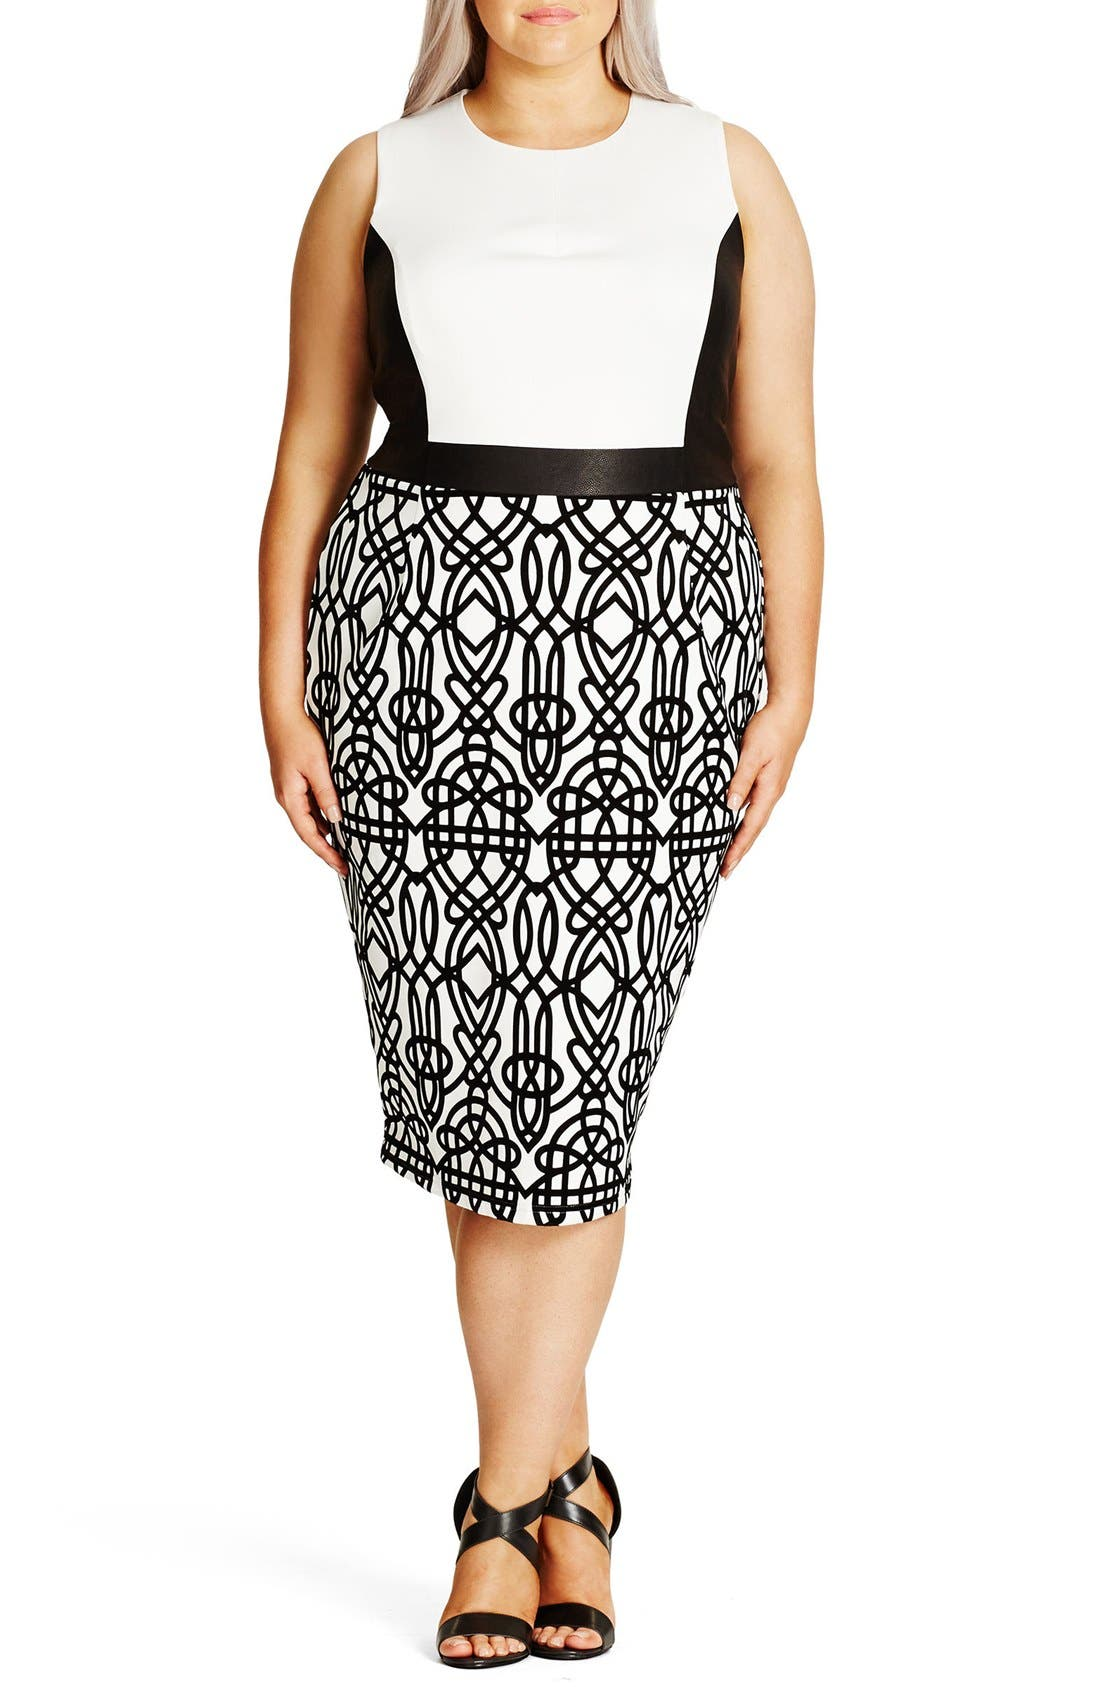 City Chic 'Art Deco' Print Block Sheath Dress (Plus Size)